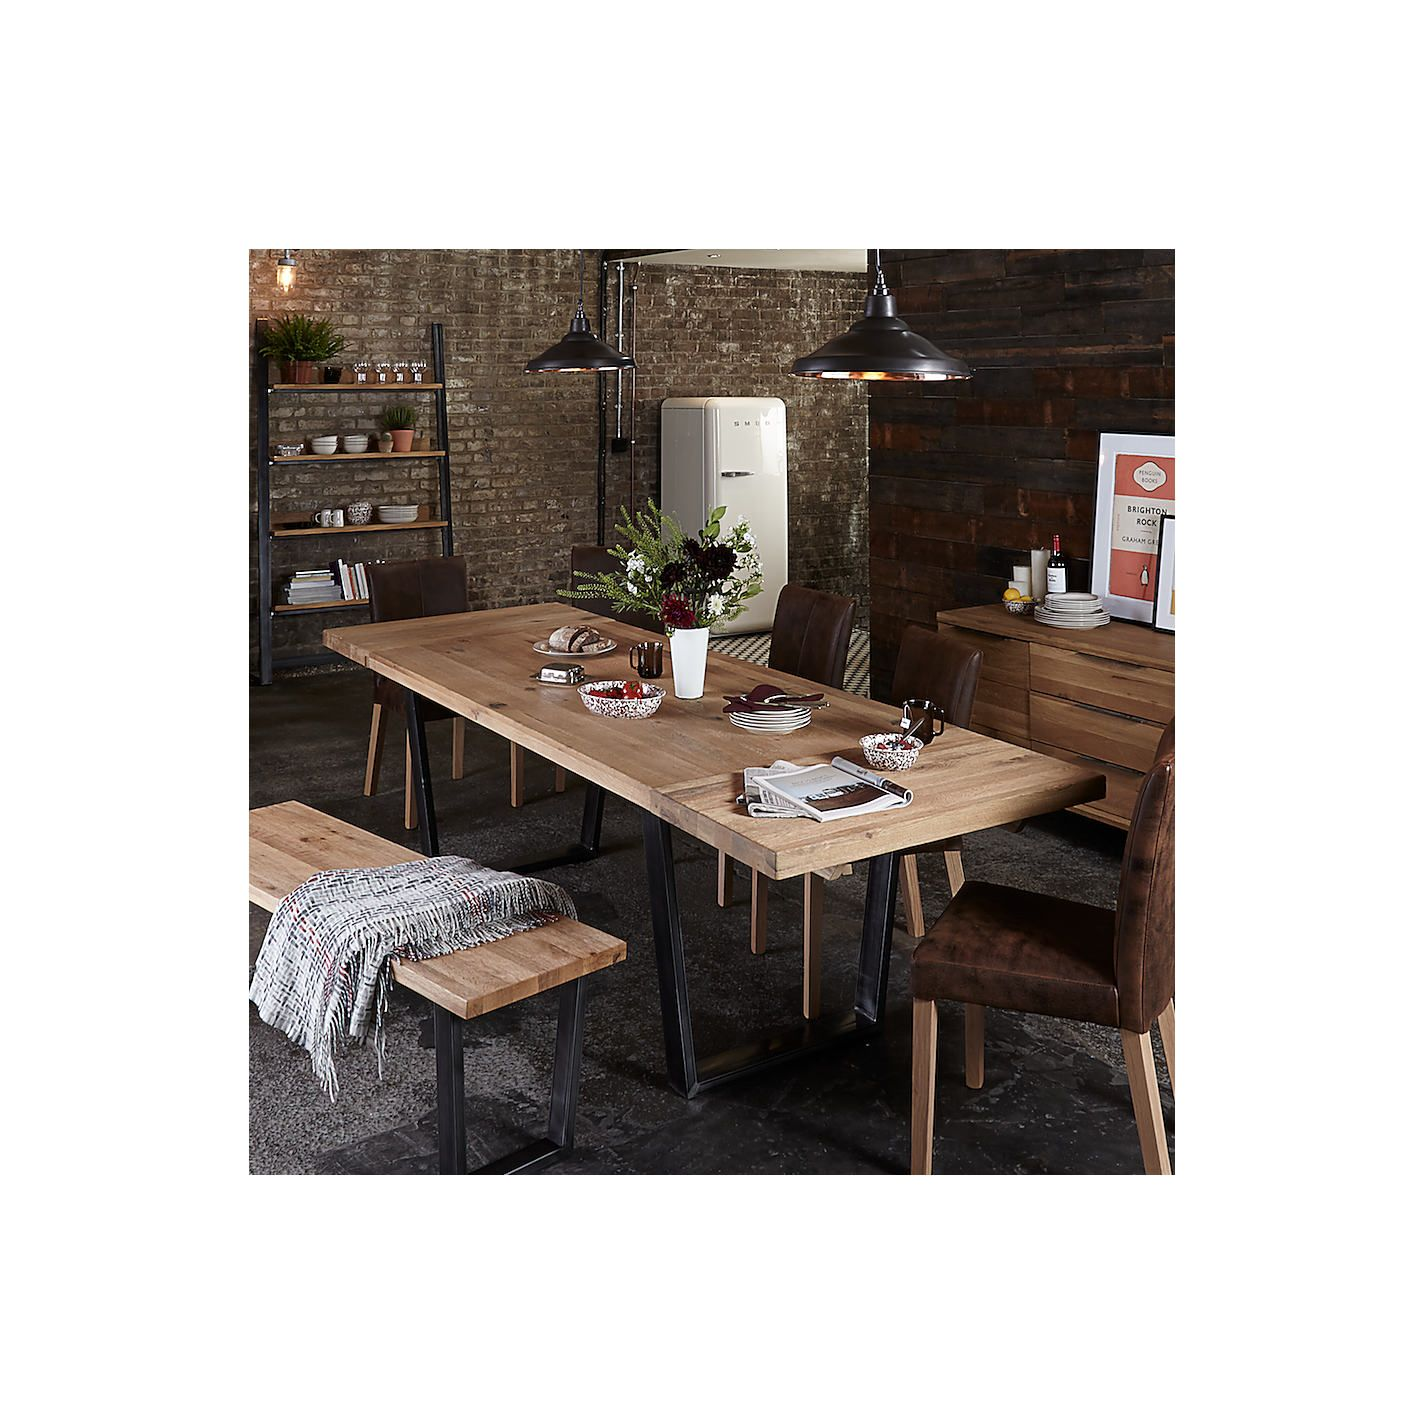 John Lewis Calia Style Industrial Dining Table Kitchen Table With Reverse Trapezium Steel Leg Industrial Dining Table Dining Table In Kitchen Industrial Dining